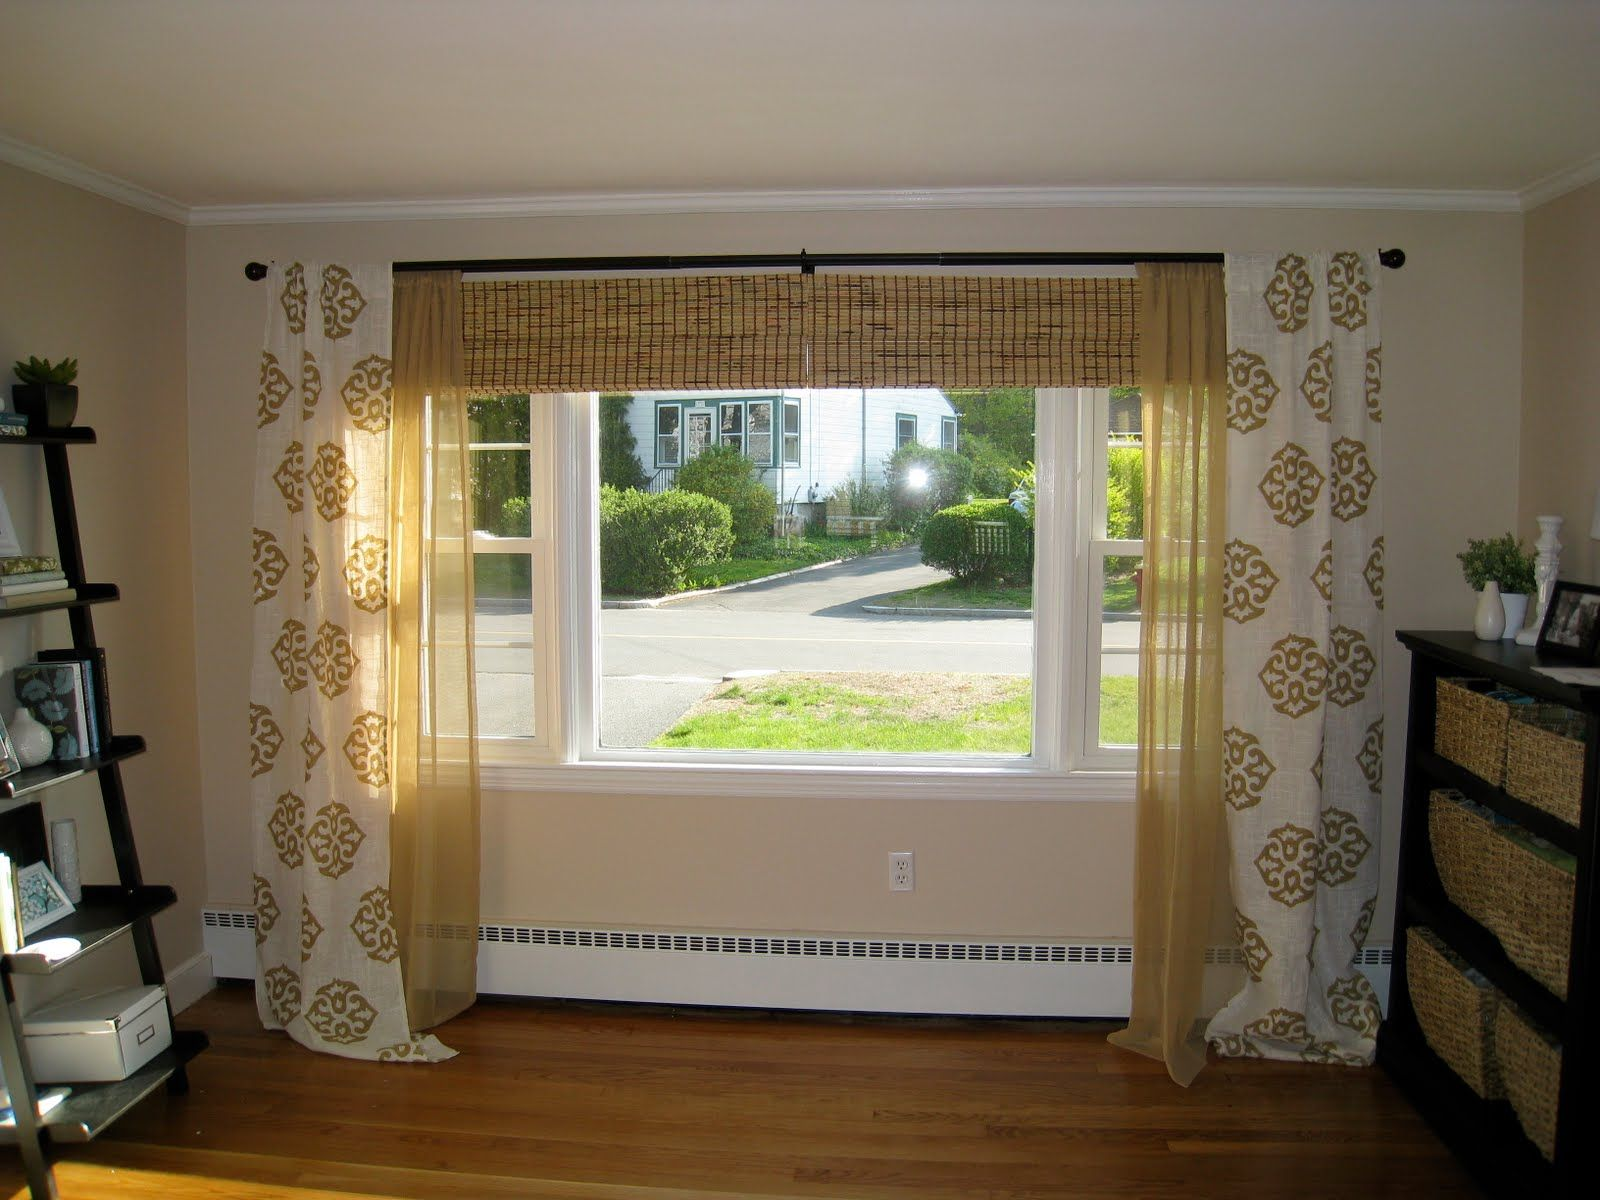 Door & Windows : Living Room Curtains Window Treatments Decorating Living  Room Window Treatments Curtains Window Treatments Window Treatment Ideas  Window ...